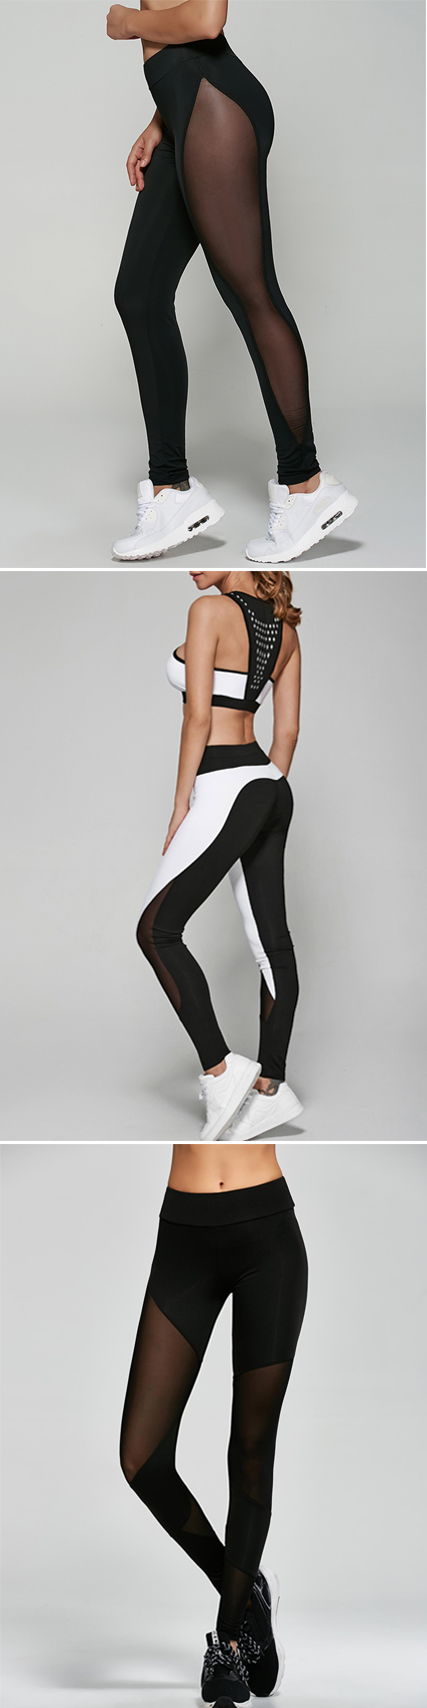 Activewear For Women | Workout Clothes & Athletic Wear Trendy Online